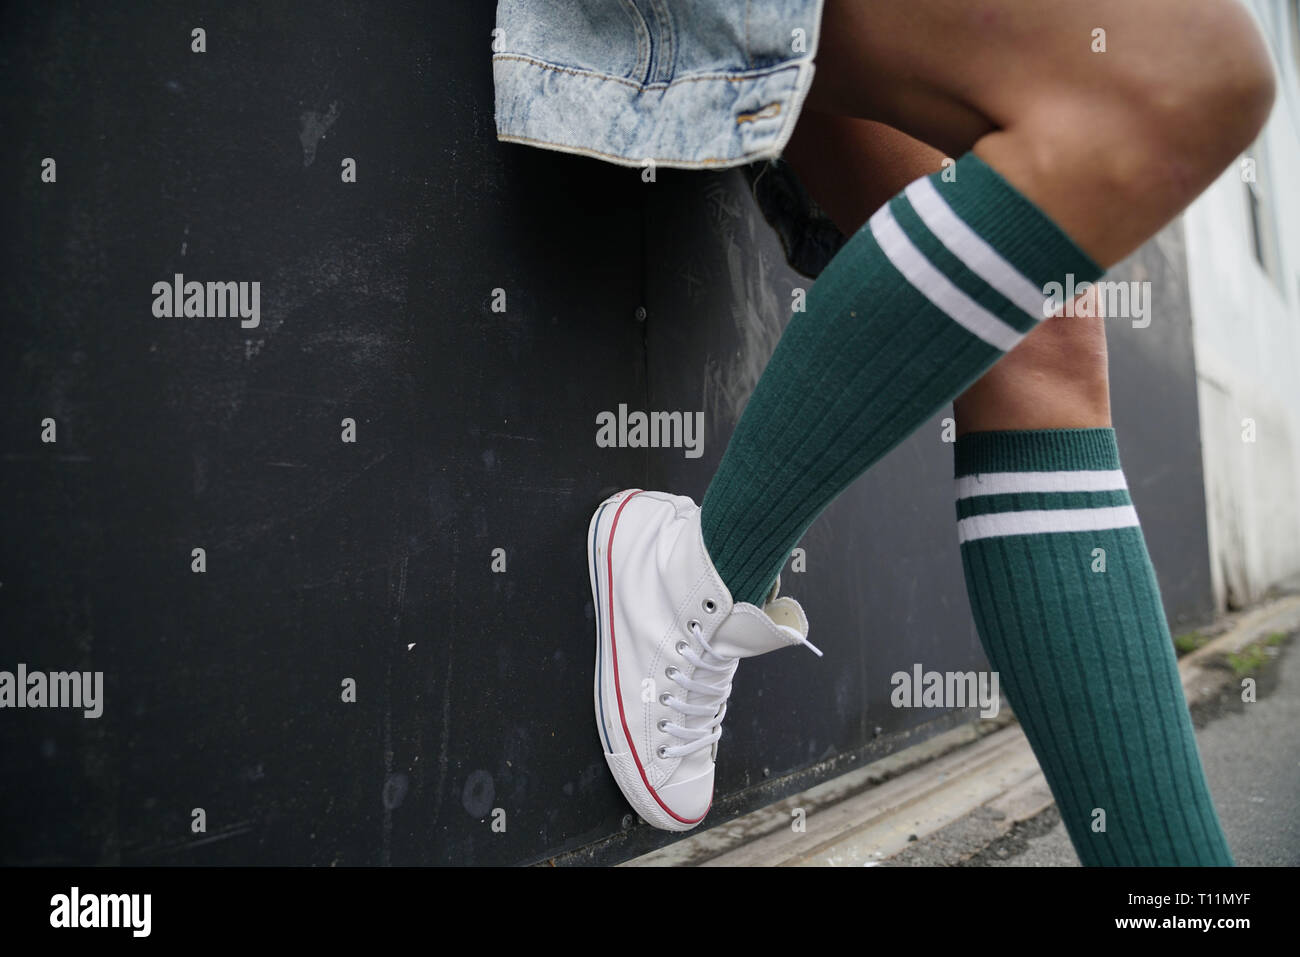 dd2c342dc Close up of woman s legs wearing knee socks in urban setting - Stock Image